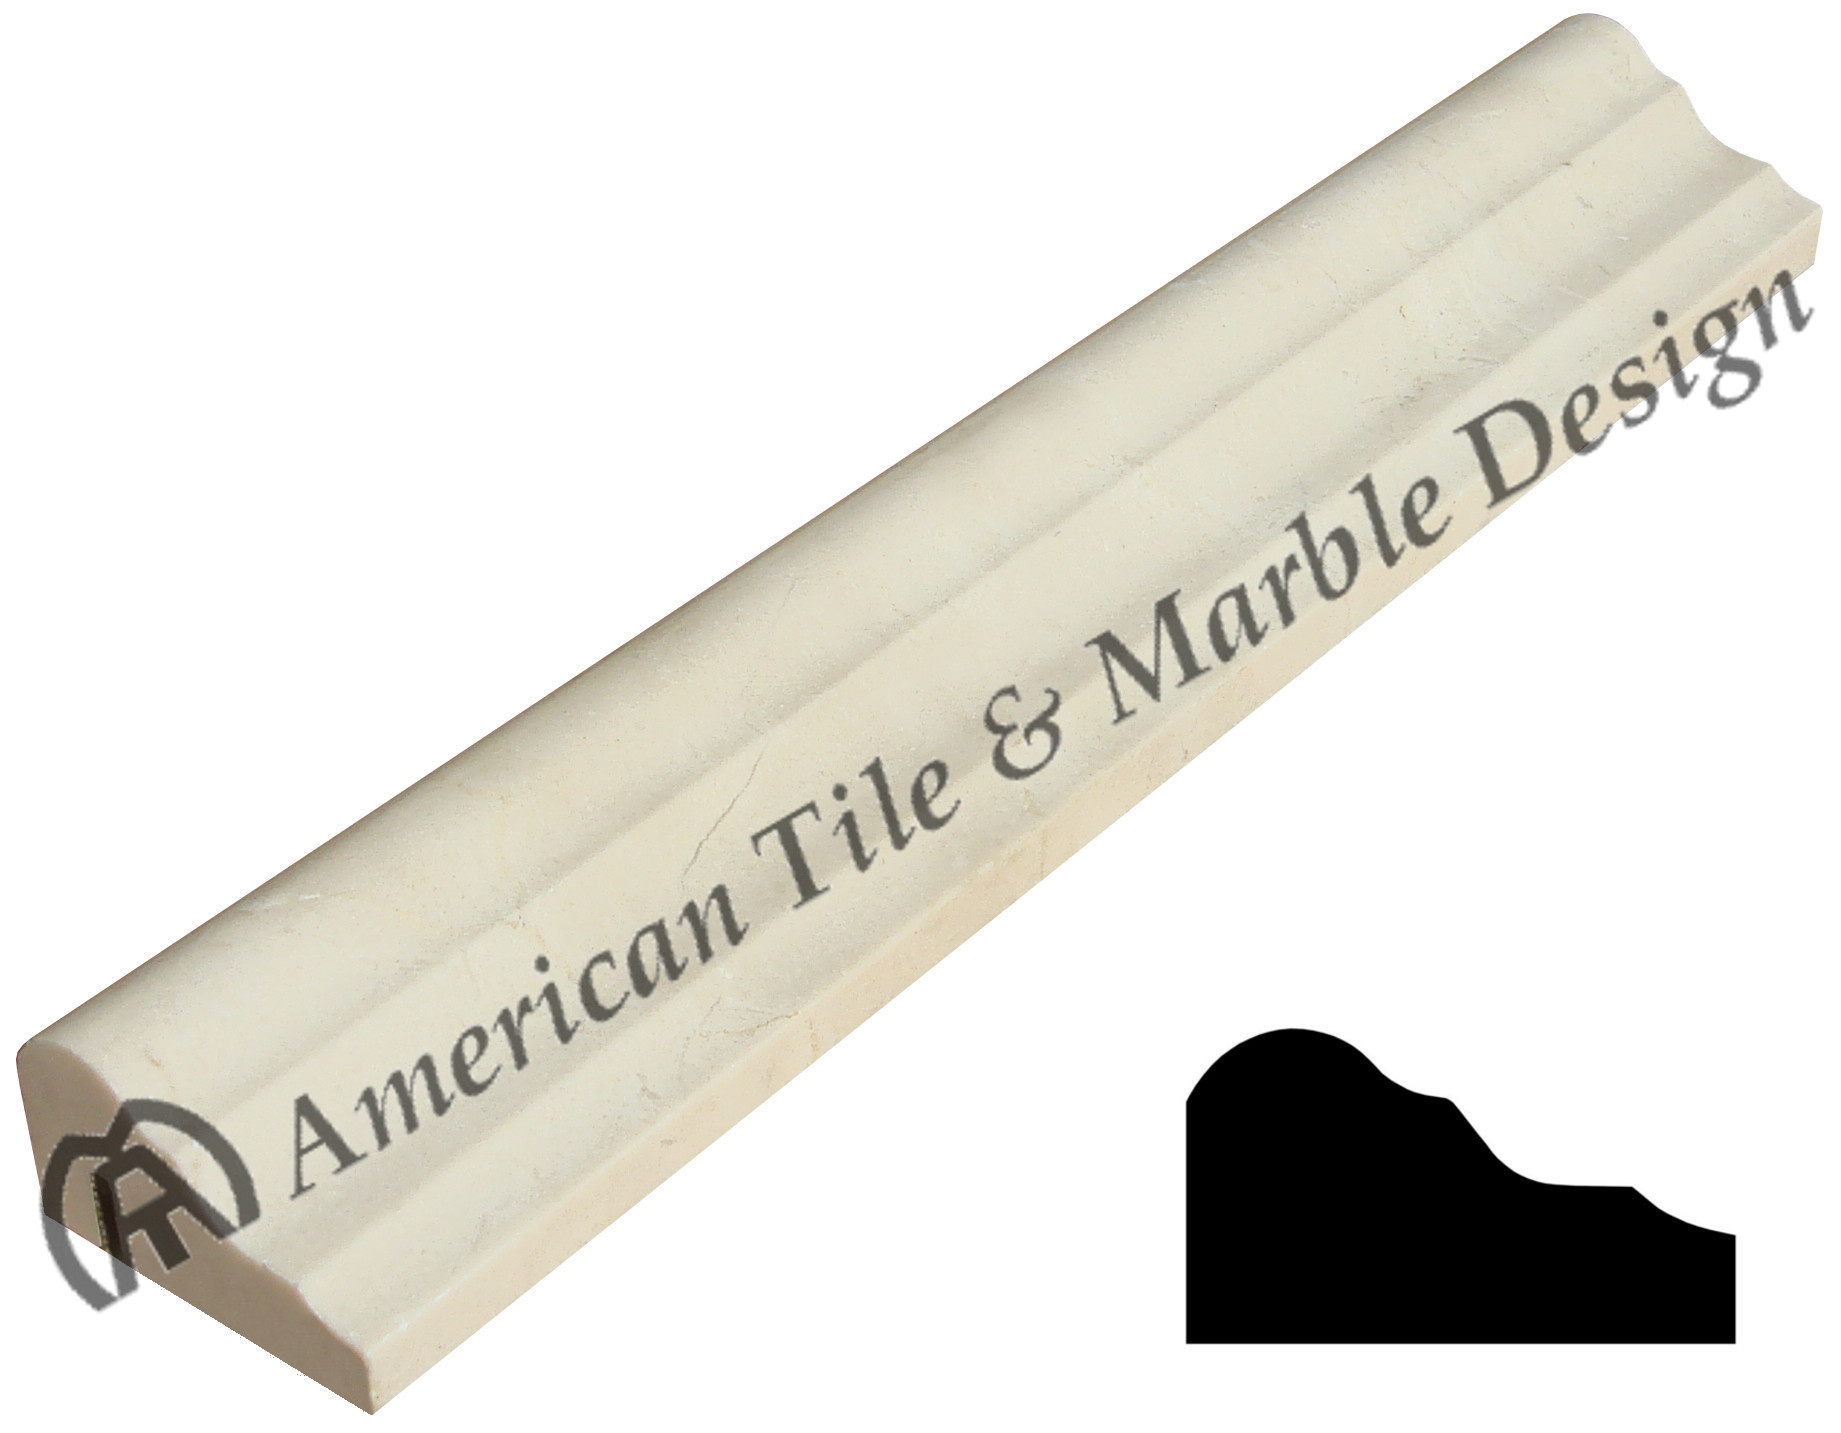 Mo 403 American Tile And Marble Design